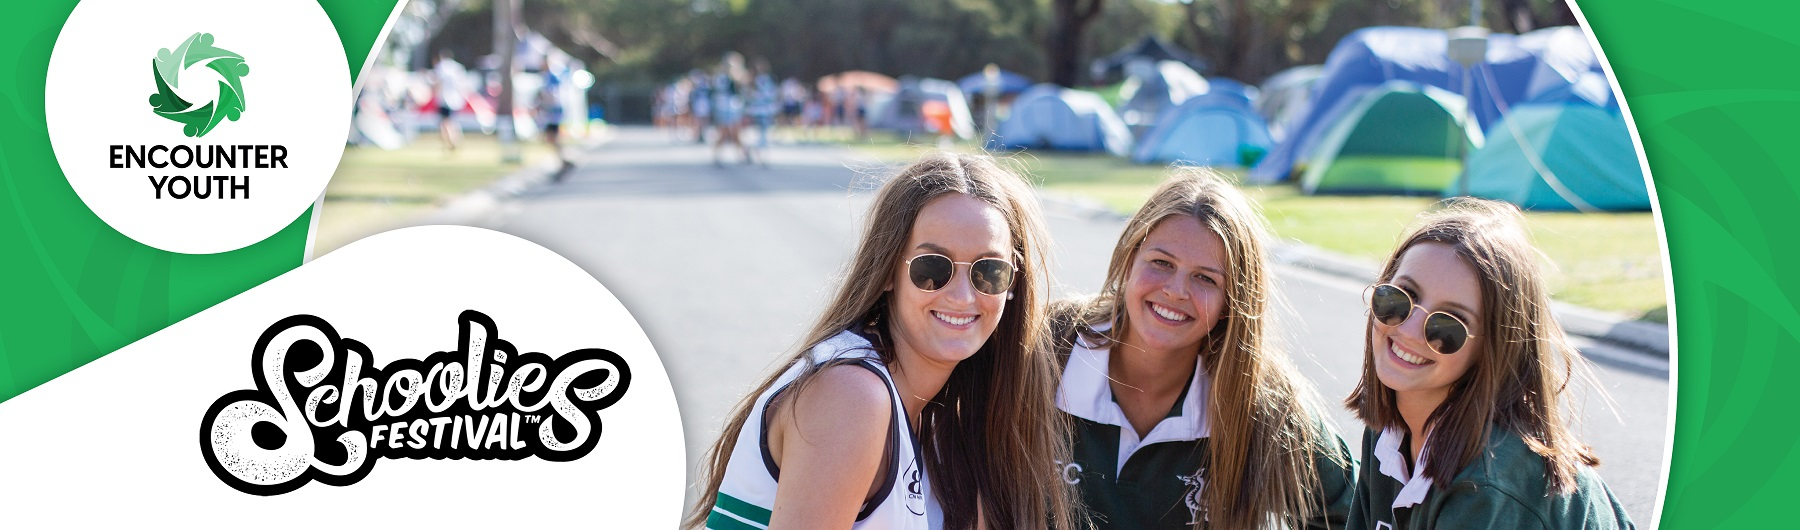 Encounter Youth hosts the Schoolies Festival.